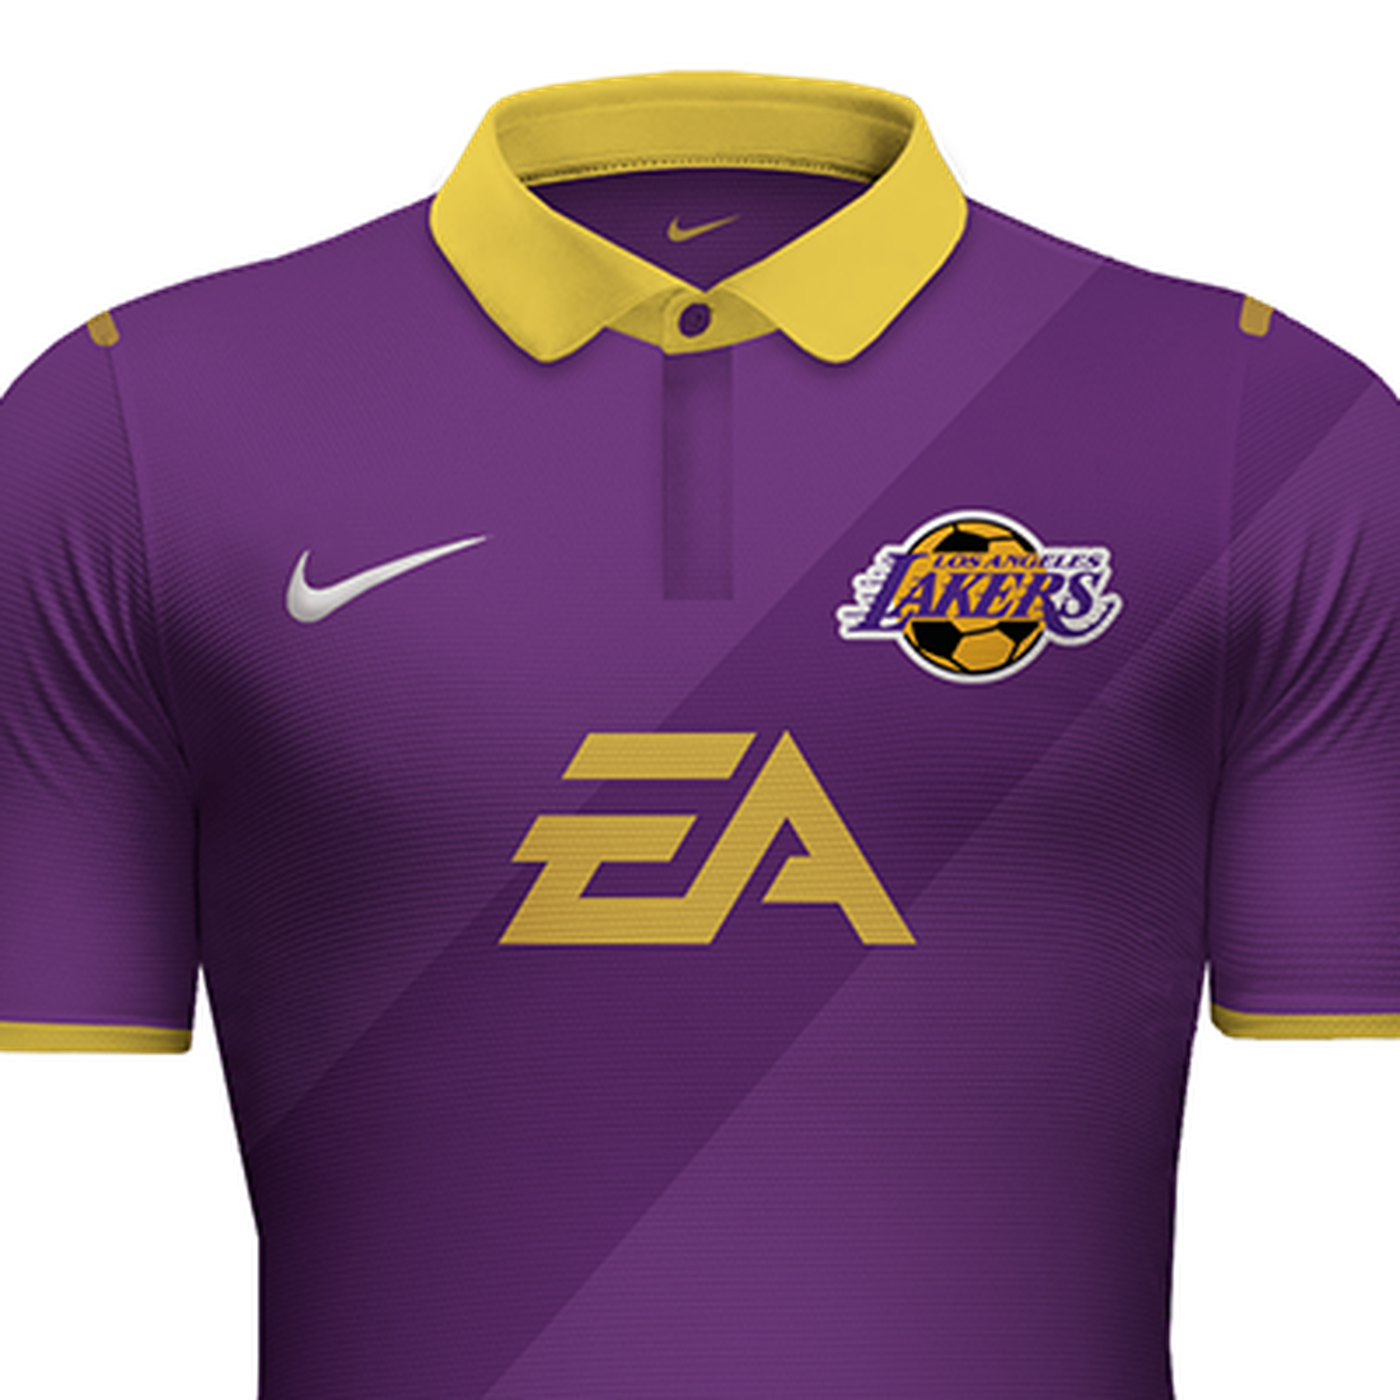 Lakers Mock Soccer Jerseys Silver Screen And Roll